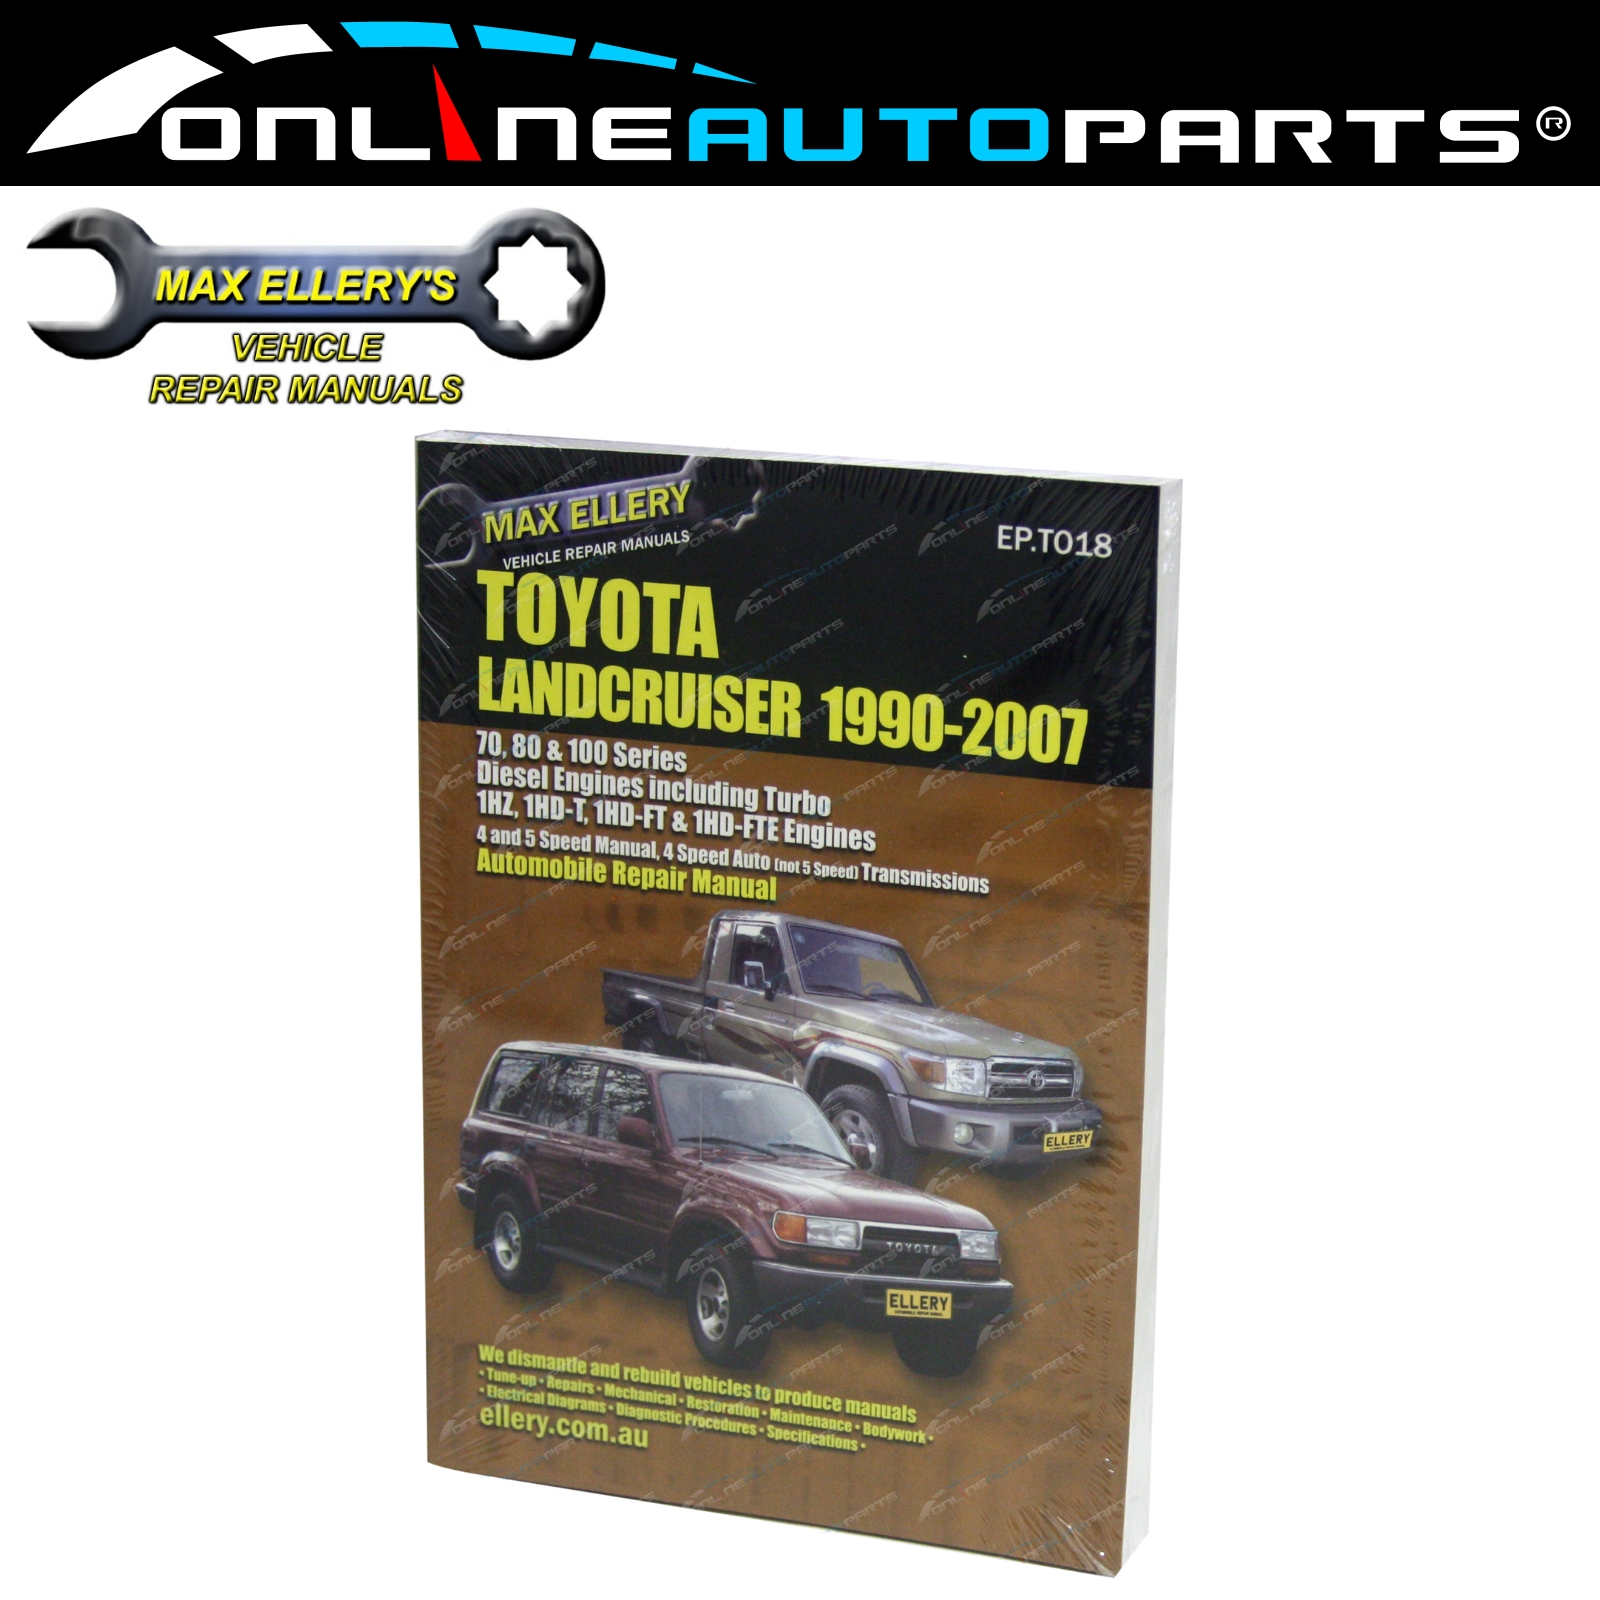 Workshop Repair Manual suits Landcruiser 80 100 Series Diesel 1HZ 1HDT  1HD-FT/E